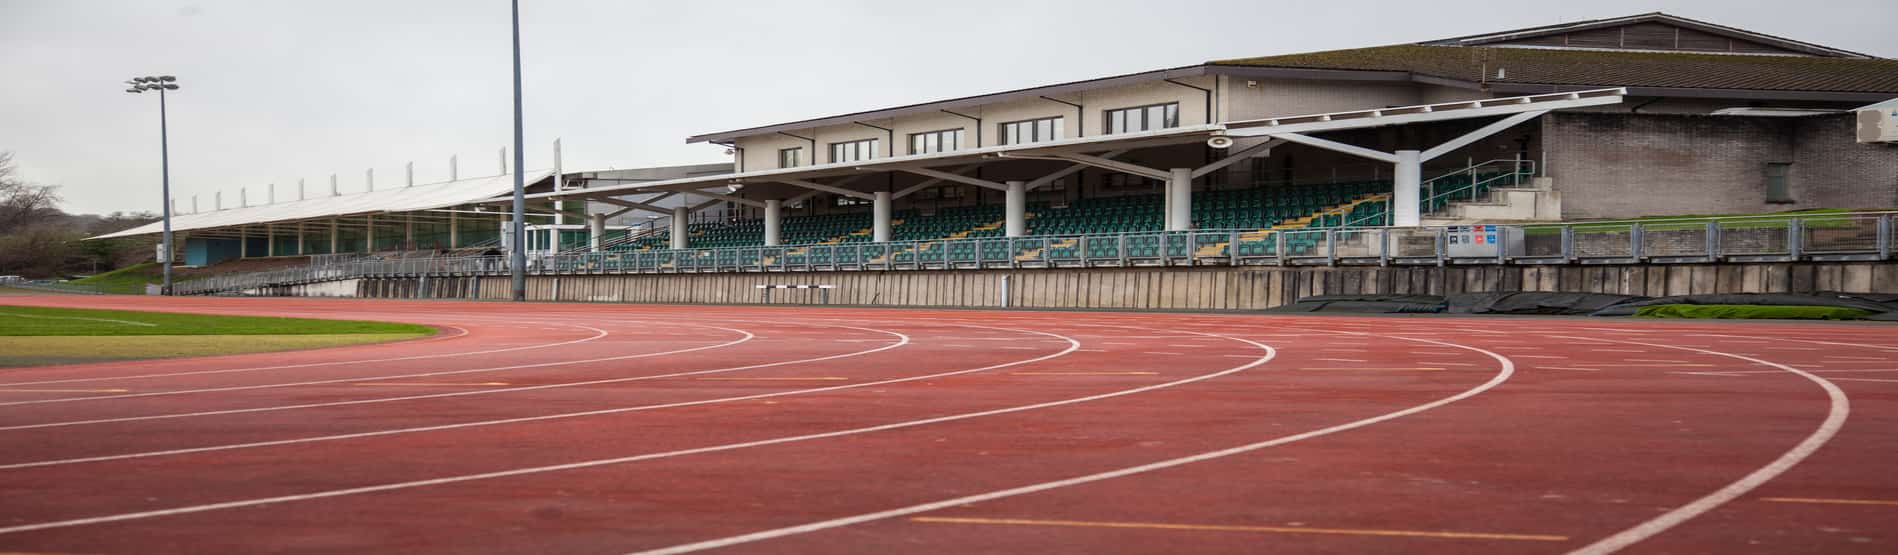 Image of track at international sports village